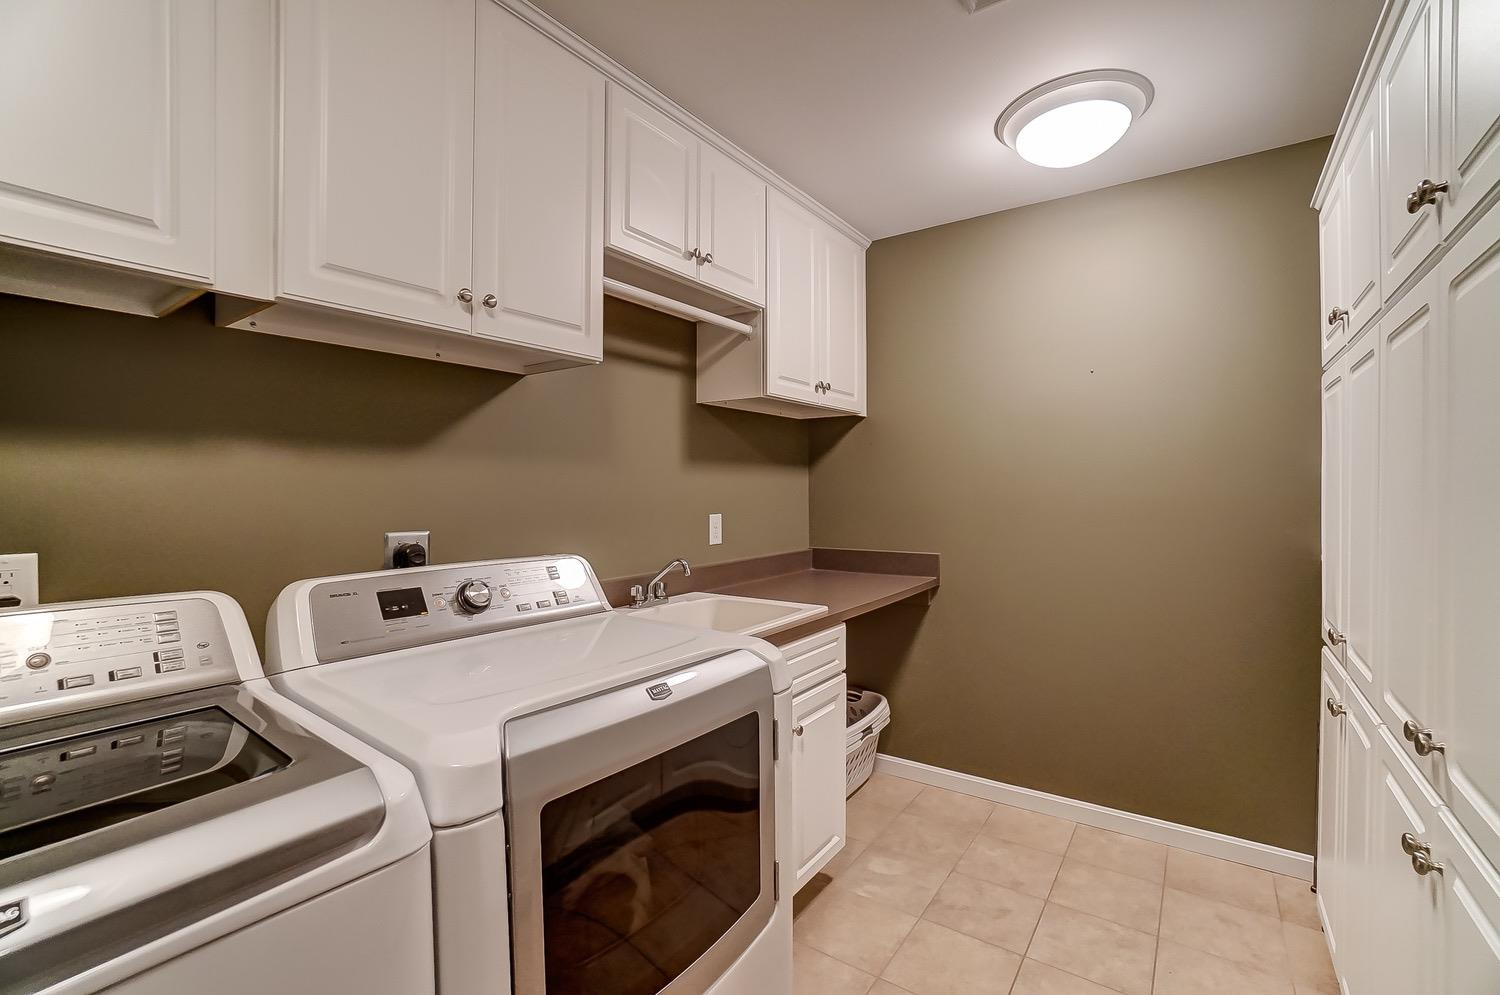 2nd floor laundry room with lots of storage!